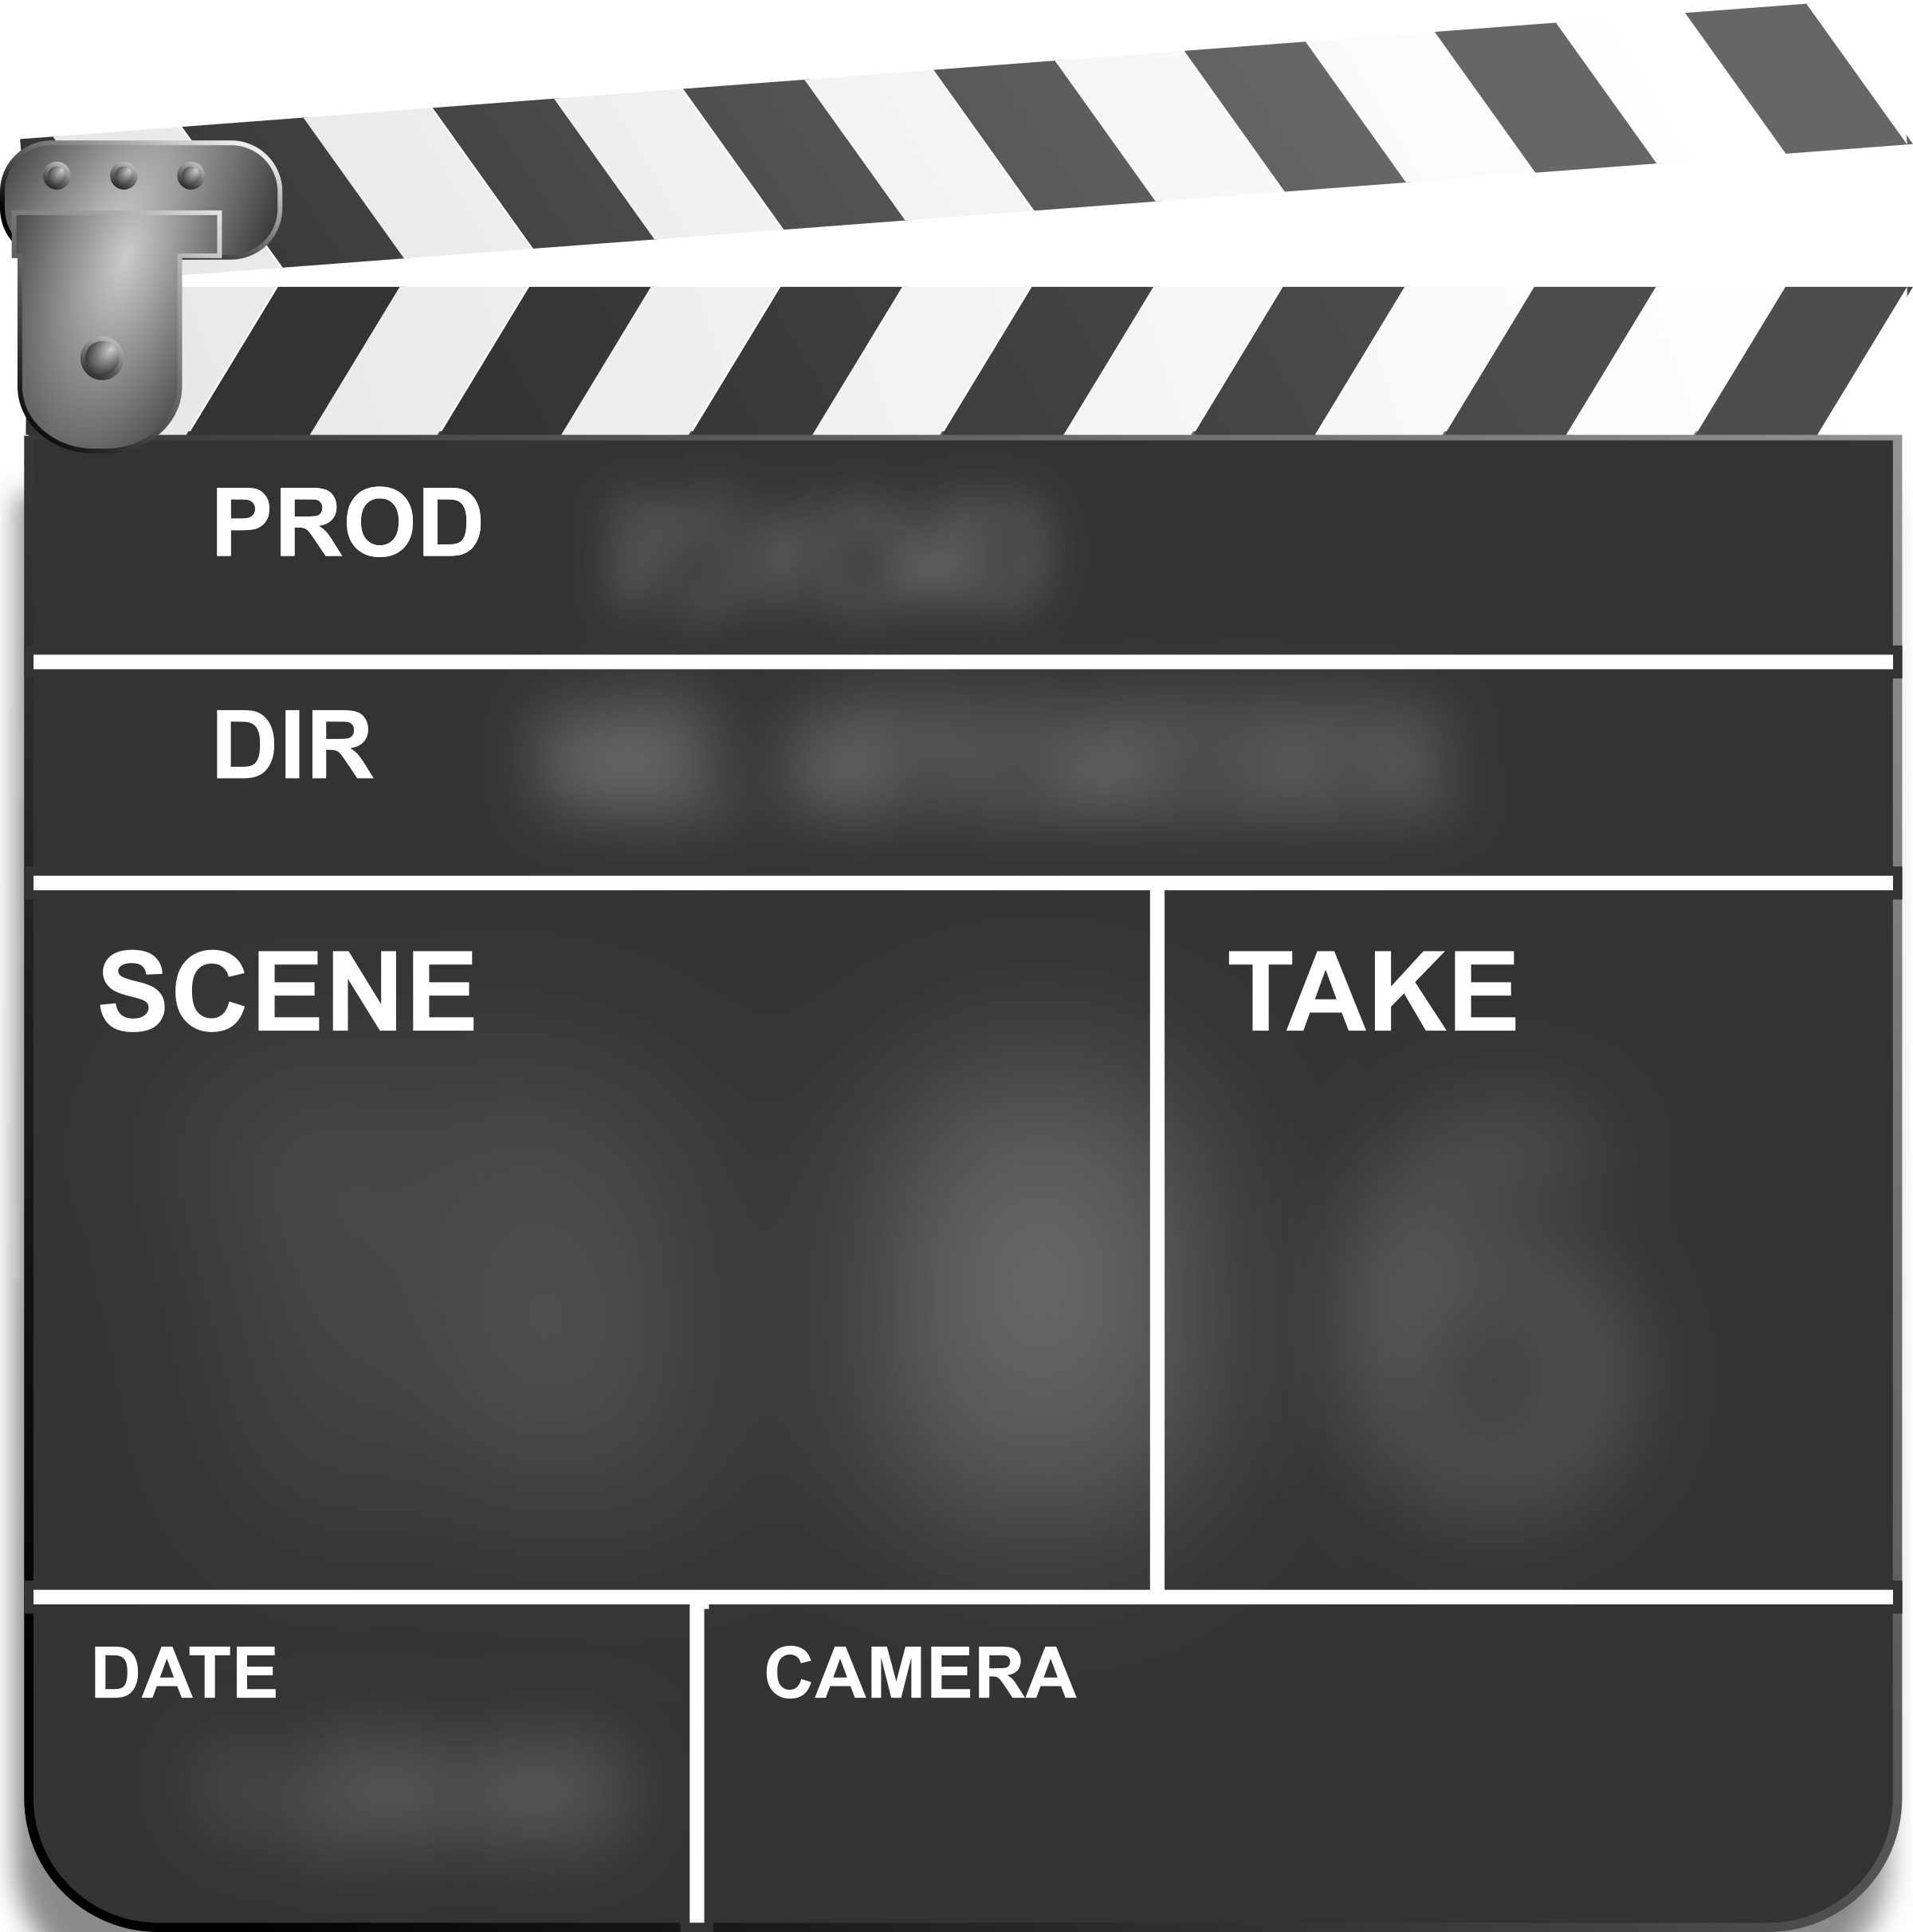 Motion Picture Film Slate Clapper by studio_hades